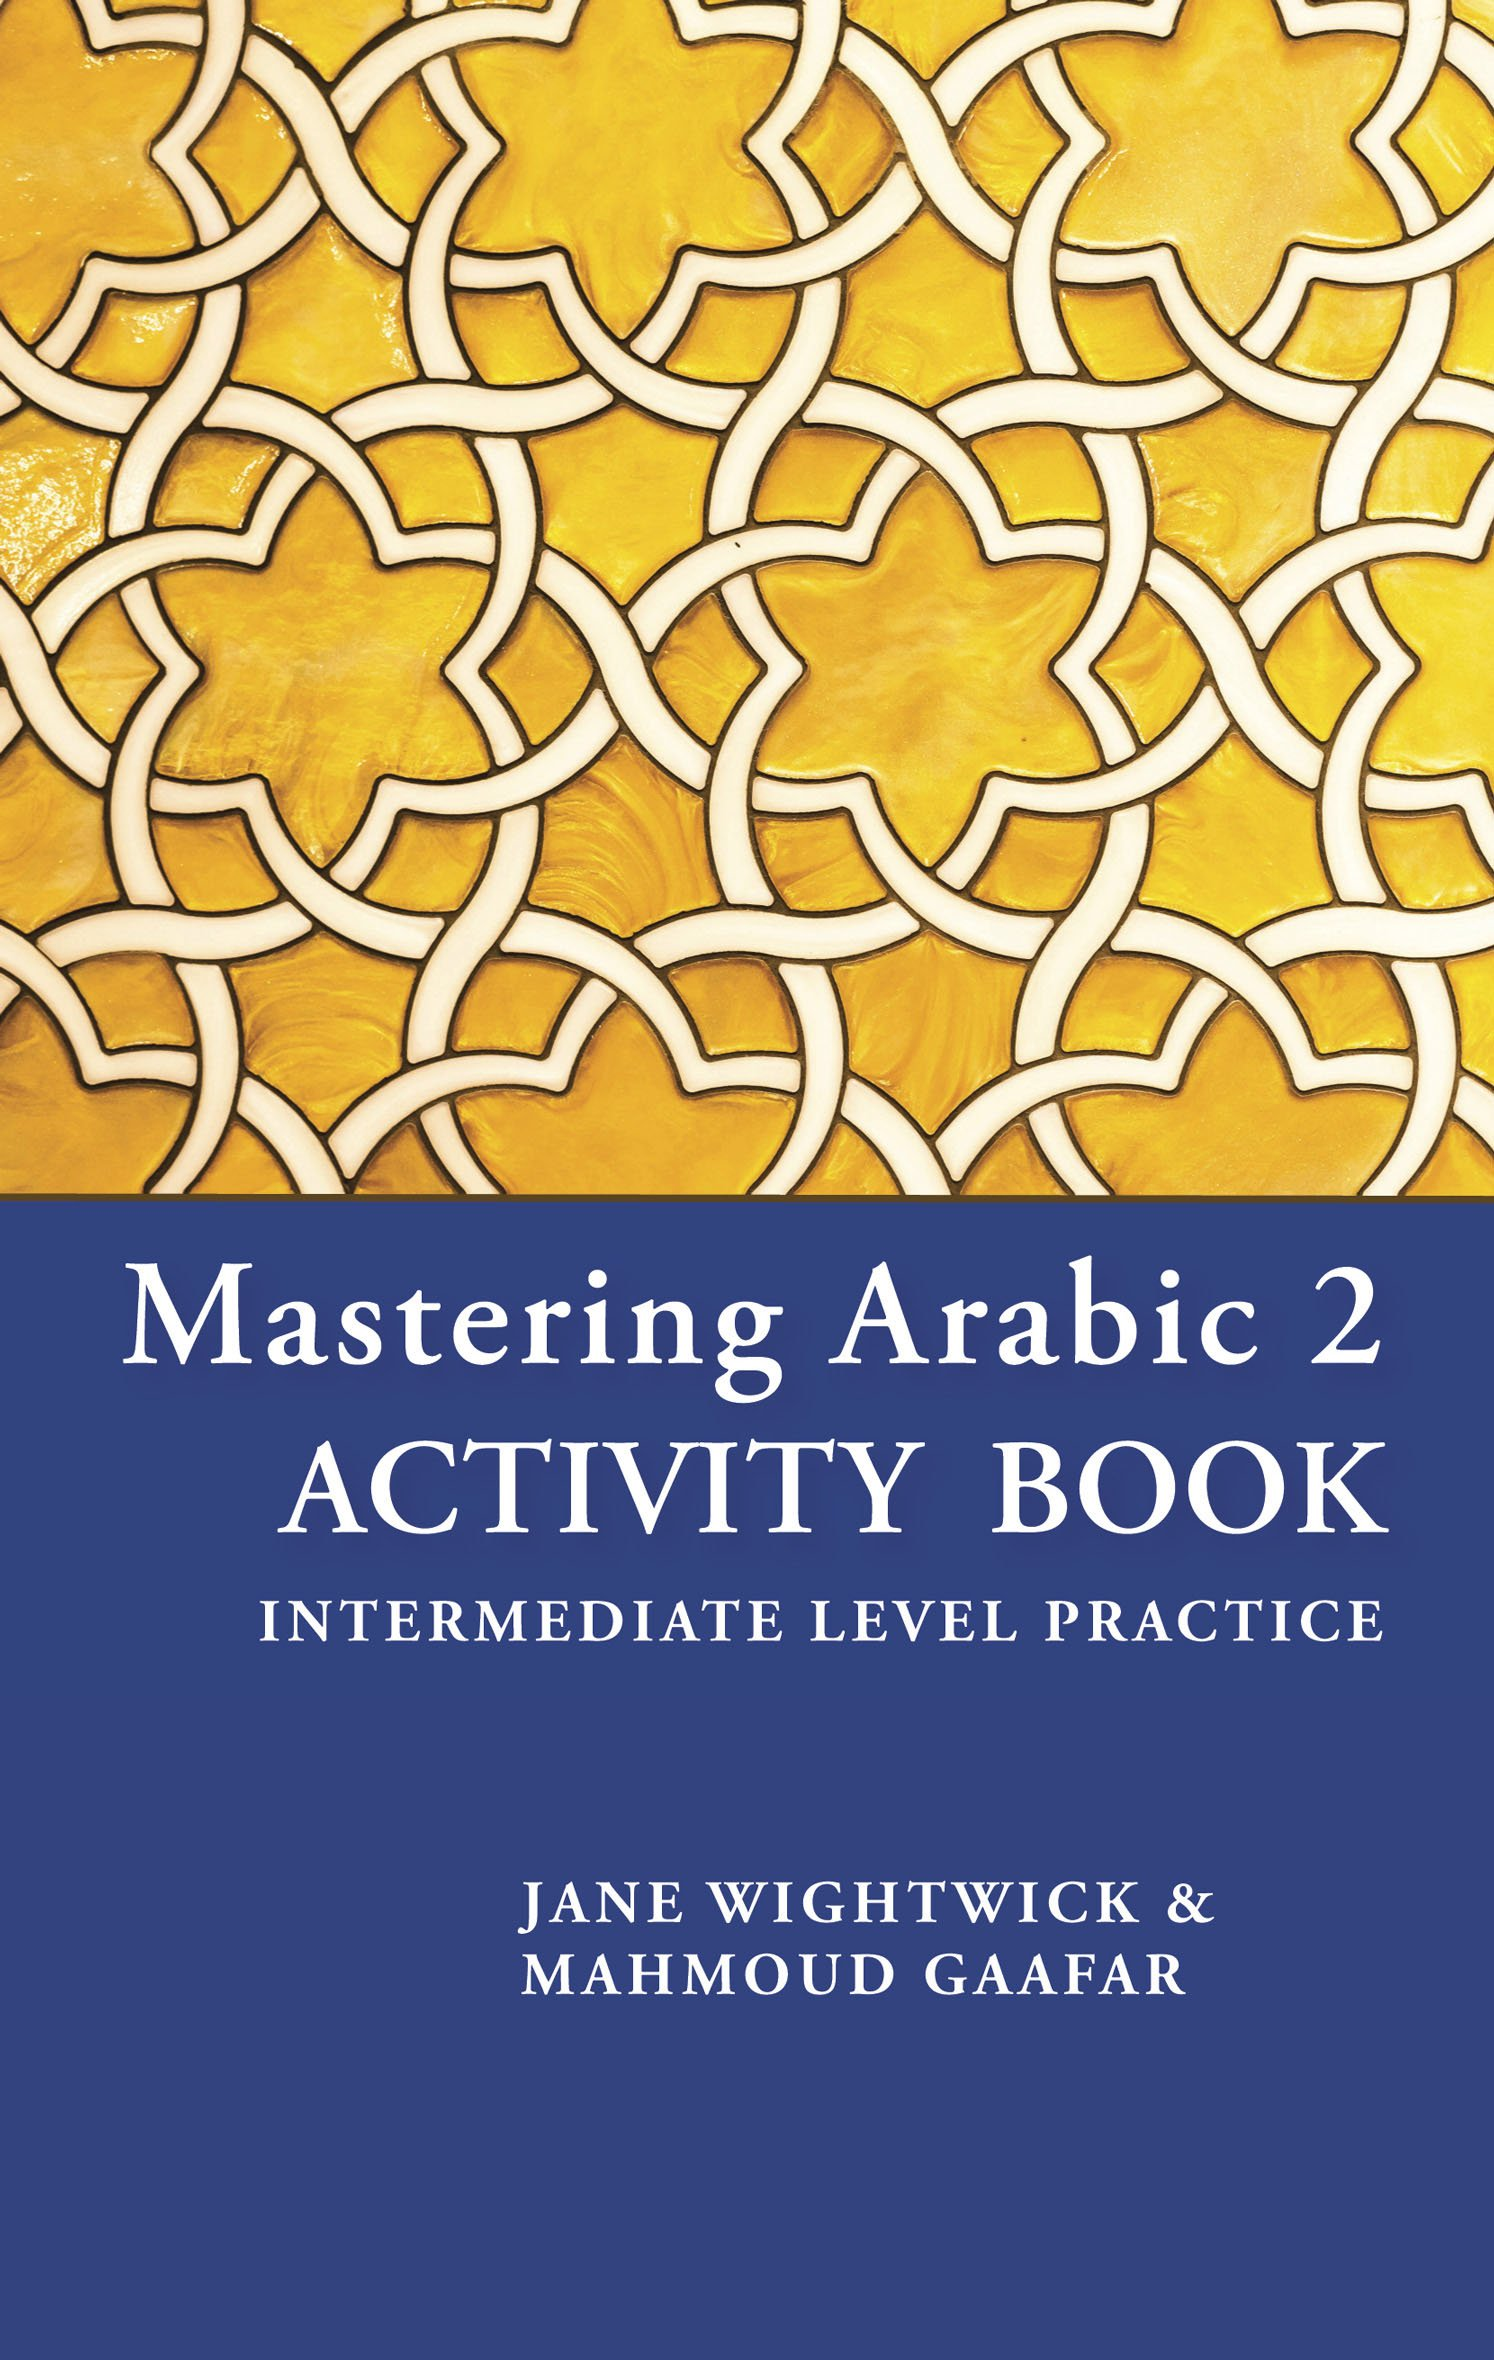 MASTERING ARABIC PDF DOWNLOAD